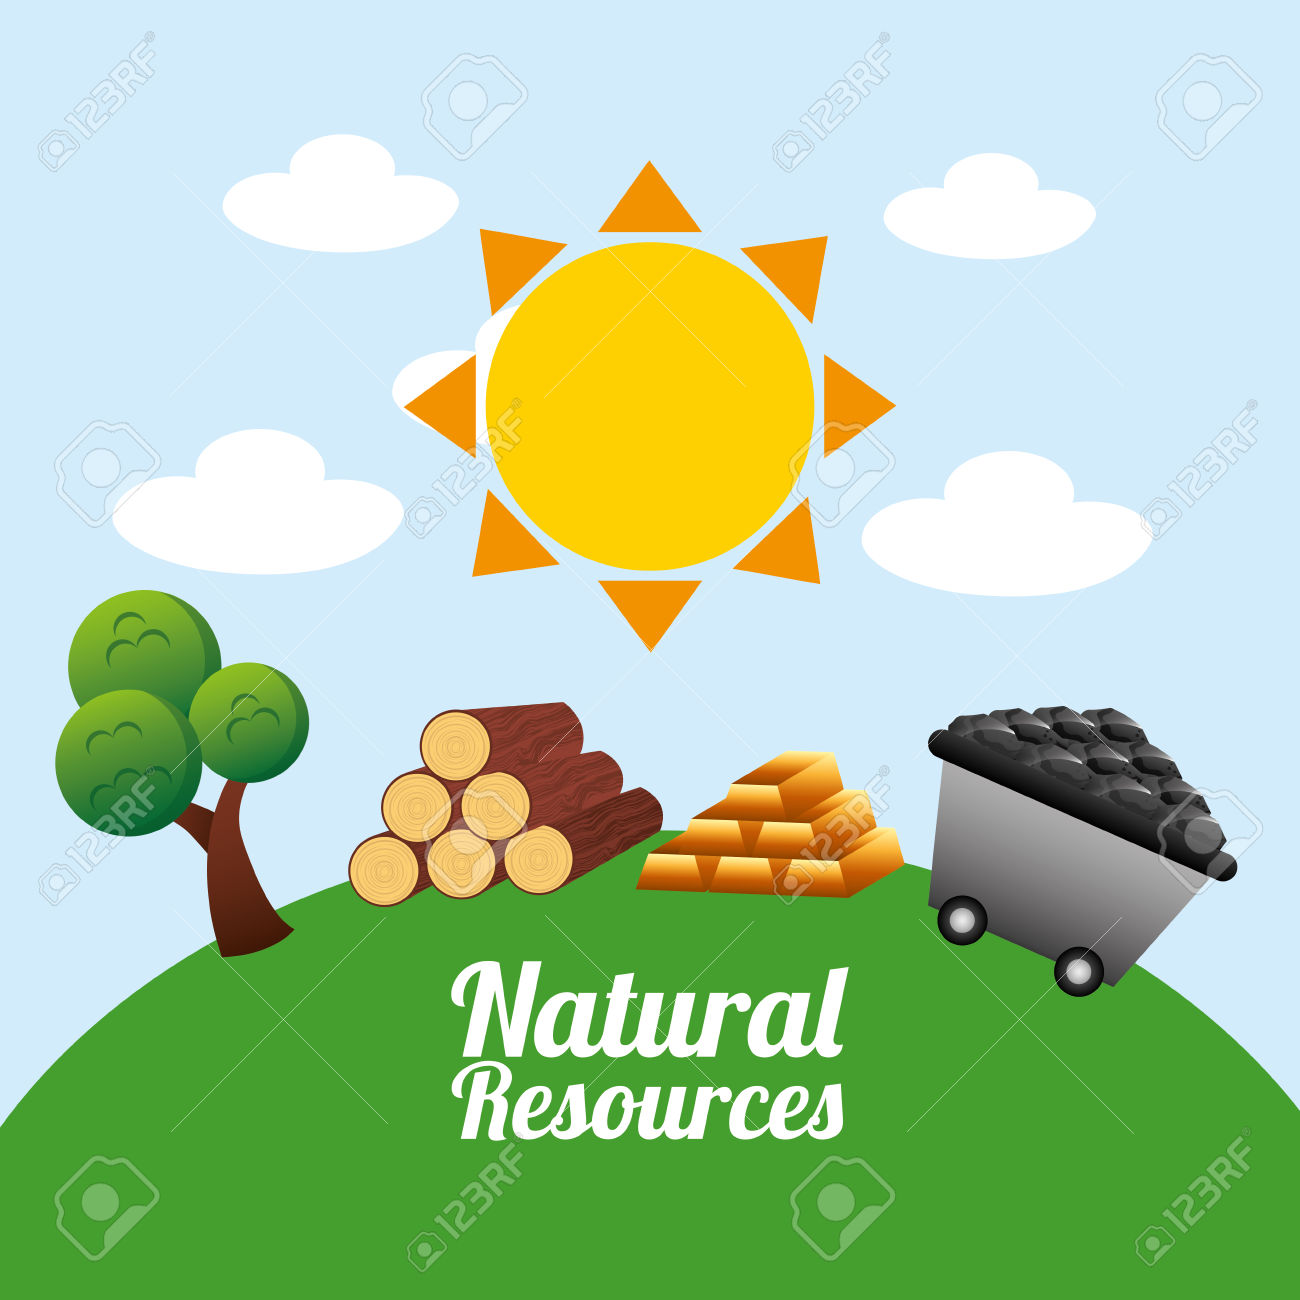 Natural Resources Design Royalty Free Cliparts, Vectors, And Stock.